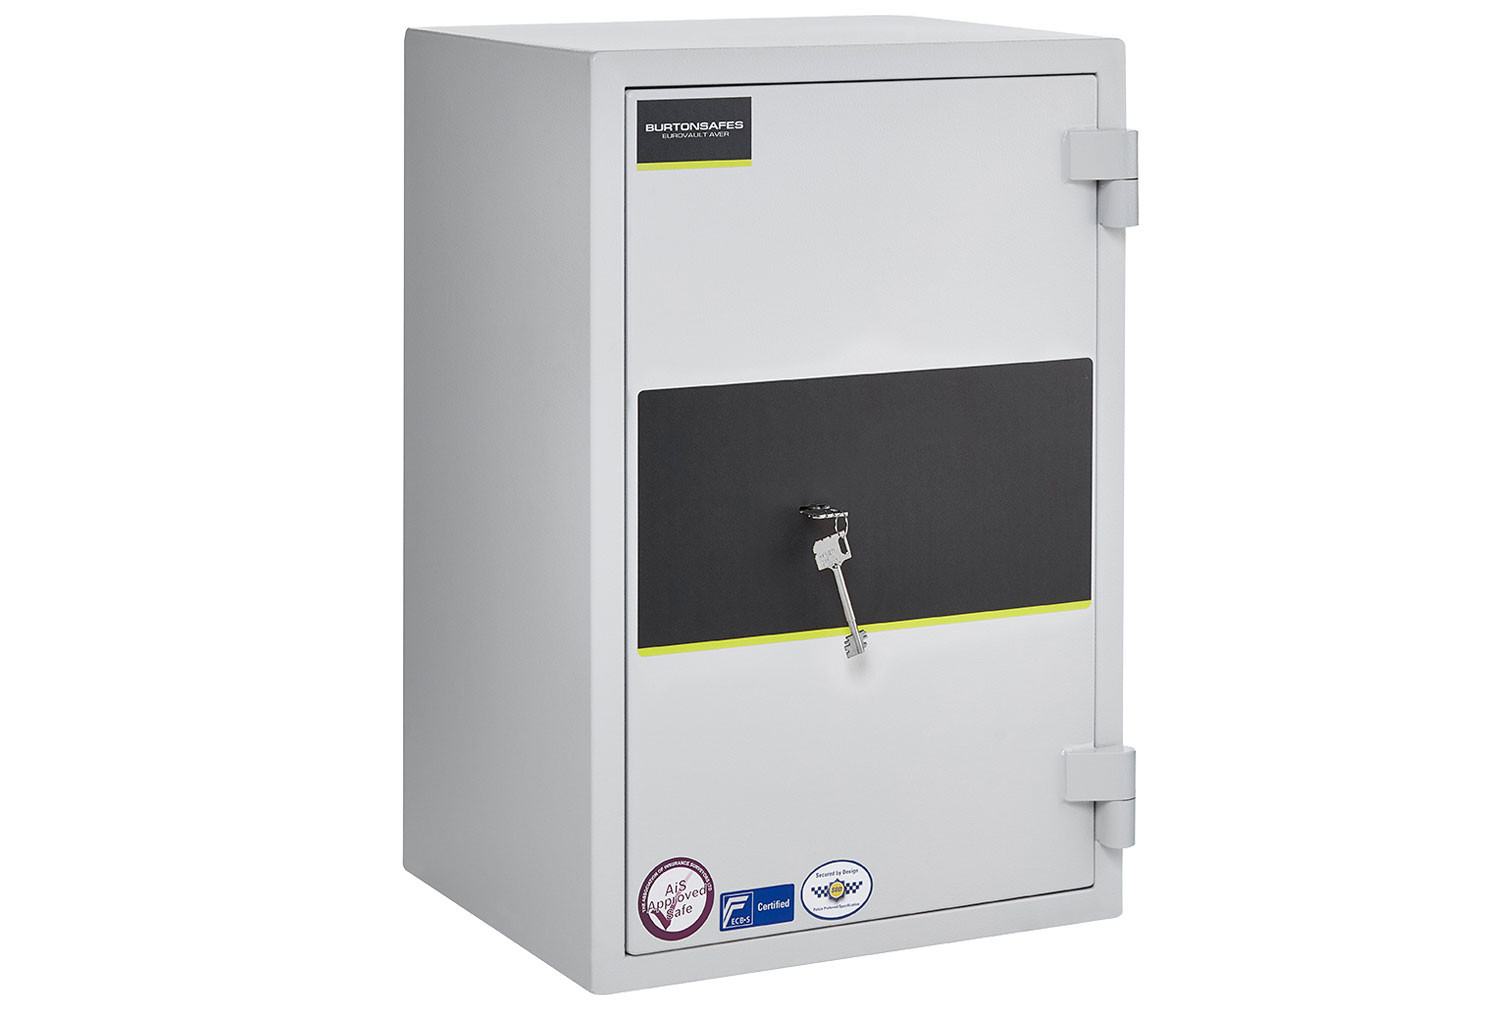 Burton Eurovault Aver Grade 0 Size 2 Safe With Key Lock (50ltrs)